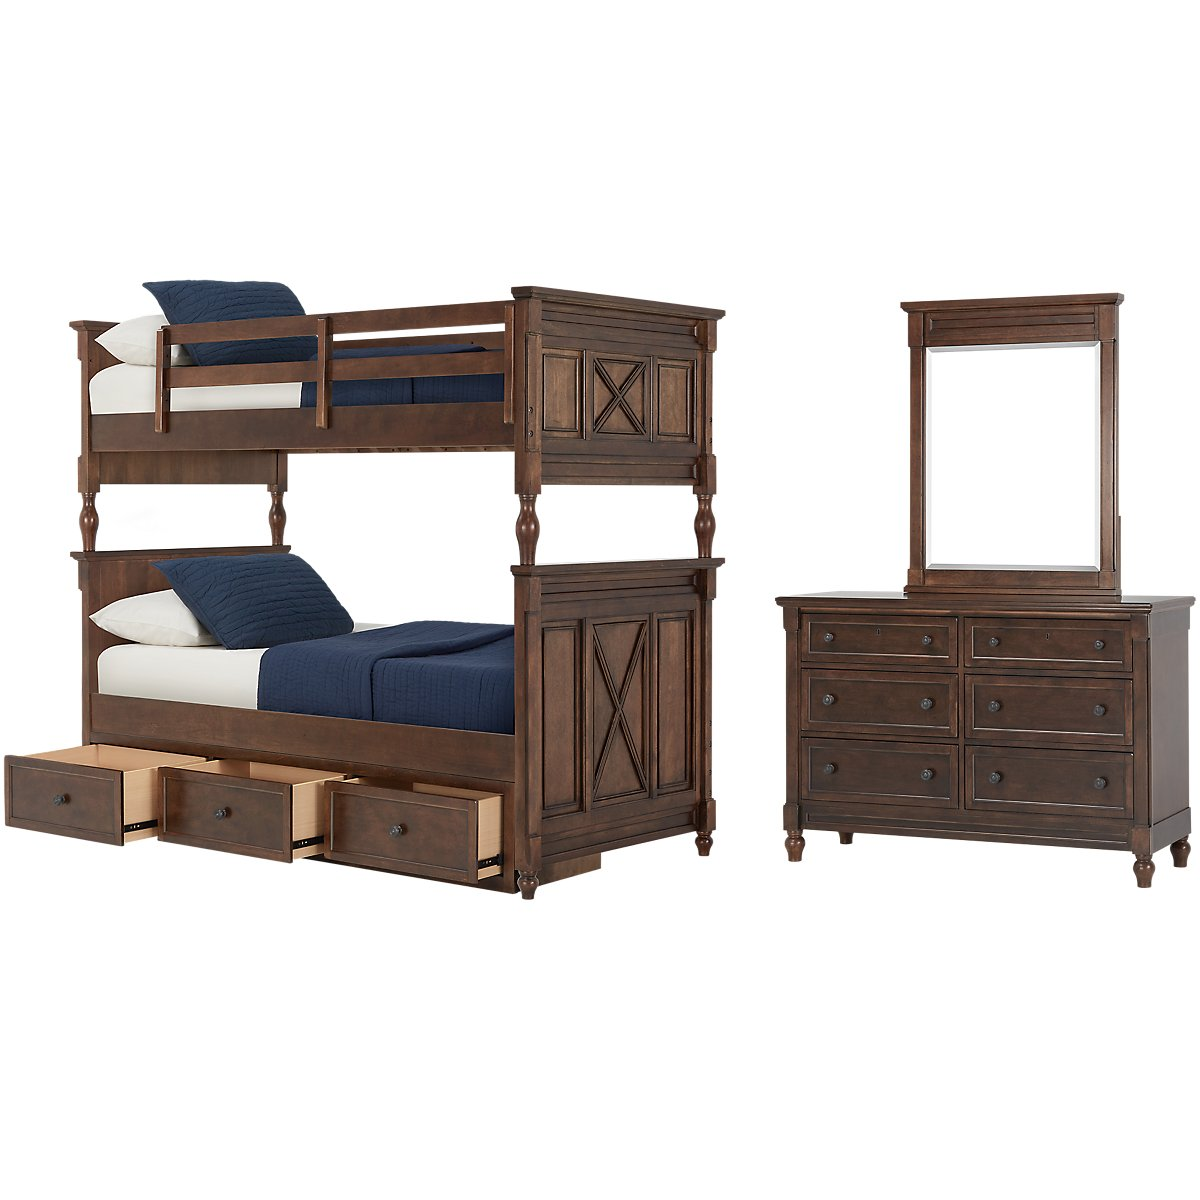 Big Sur Dark Tone Bunk Bed Storage Bedroom